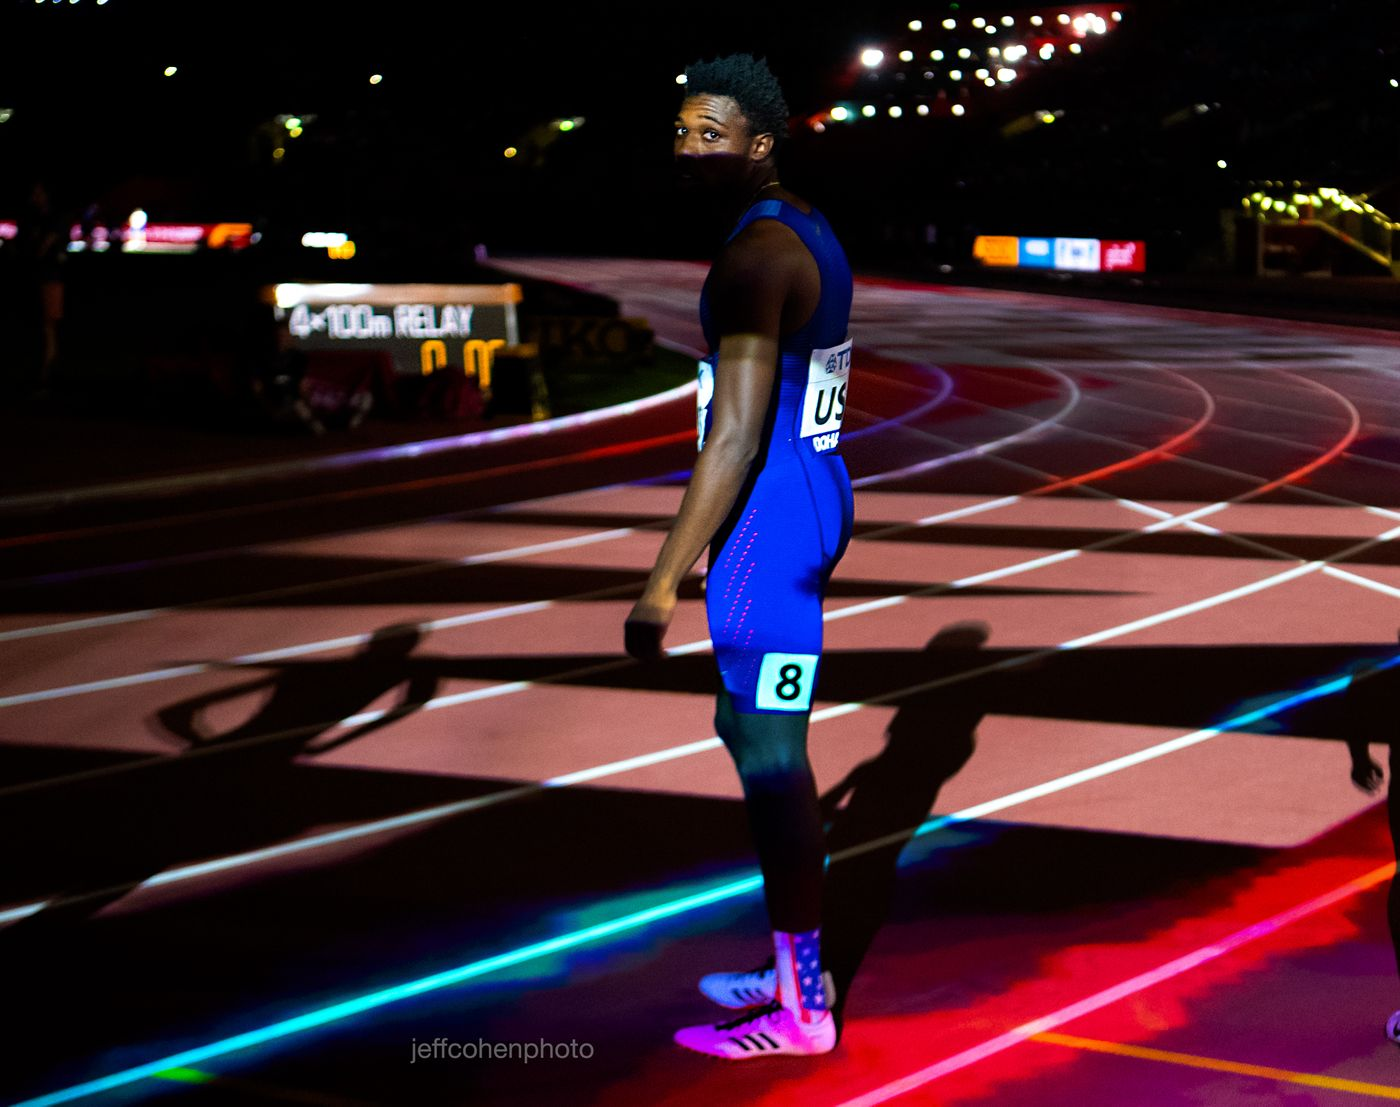 Noah Lyles, team USA 4x100 meter relay, 2019 iaaf world athletics championships doha, qatar